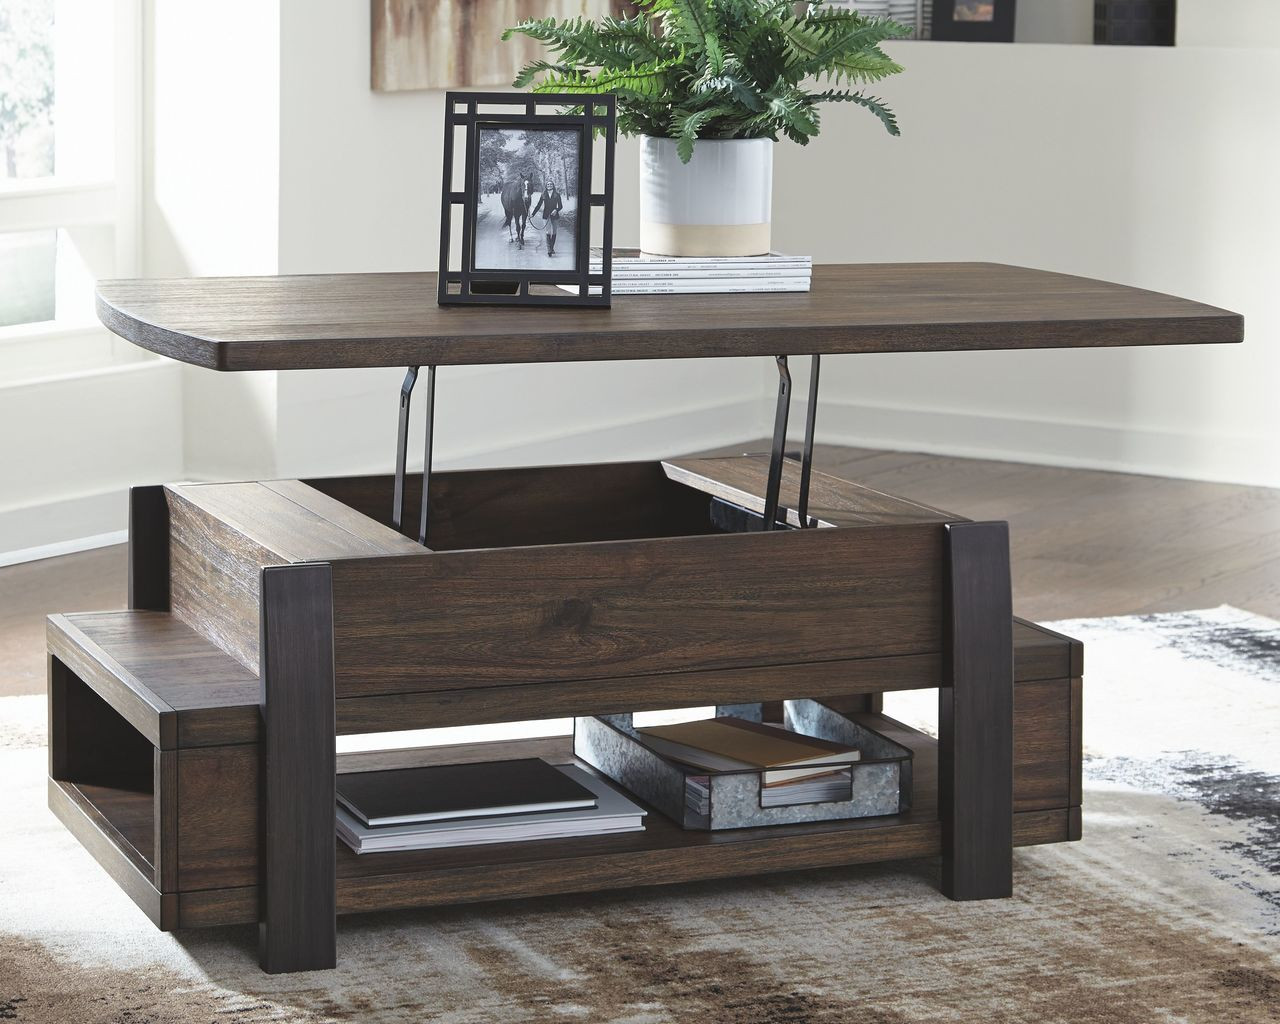 Ashley Vailbry Brown Lift Top Cocktail Table On Sale At Furniture And Mattress Warehouse Serving Holland Mi